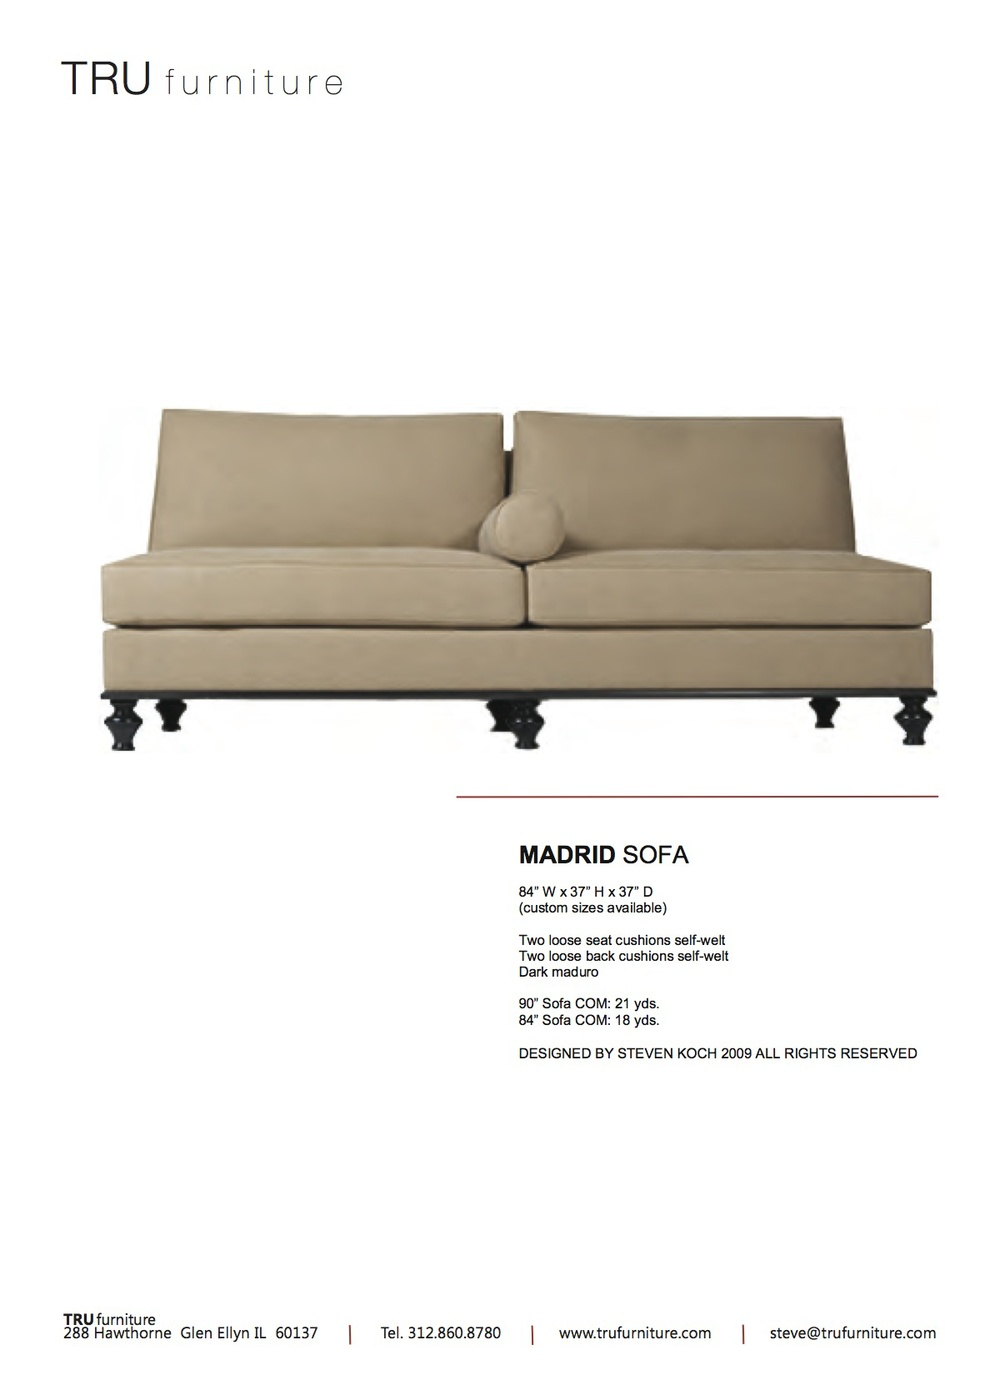 Madrid Sofa copy.jpg